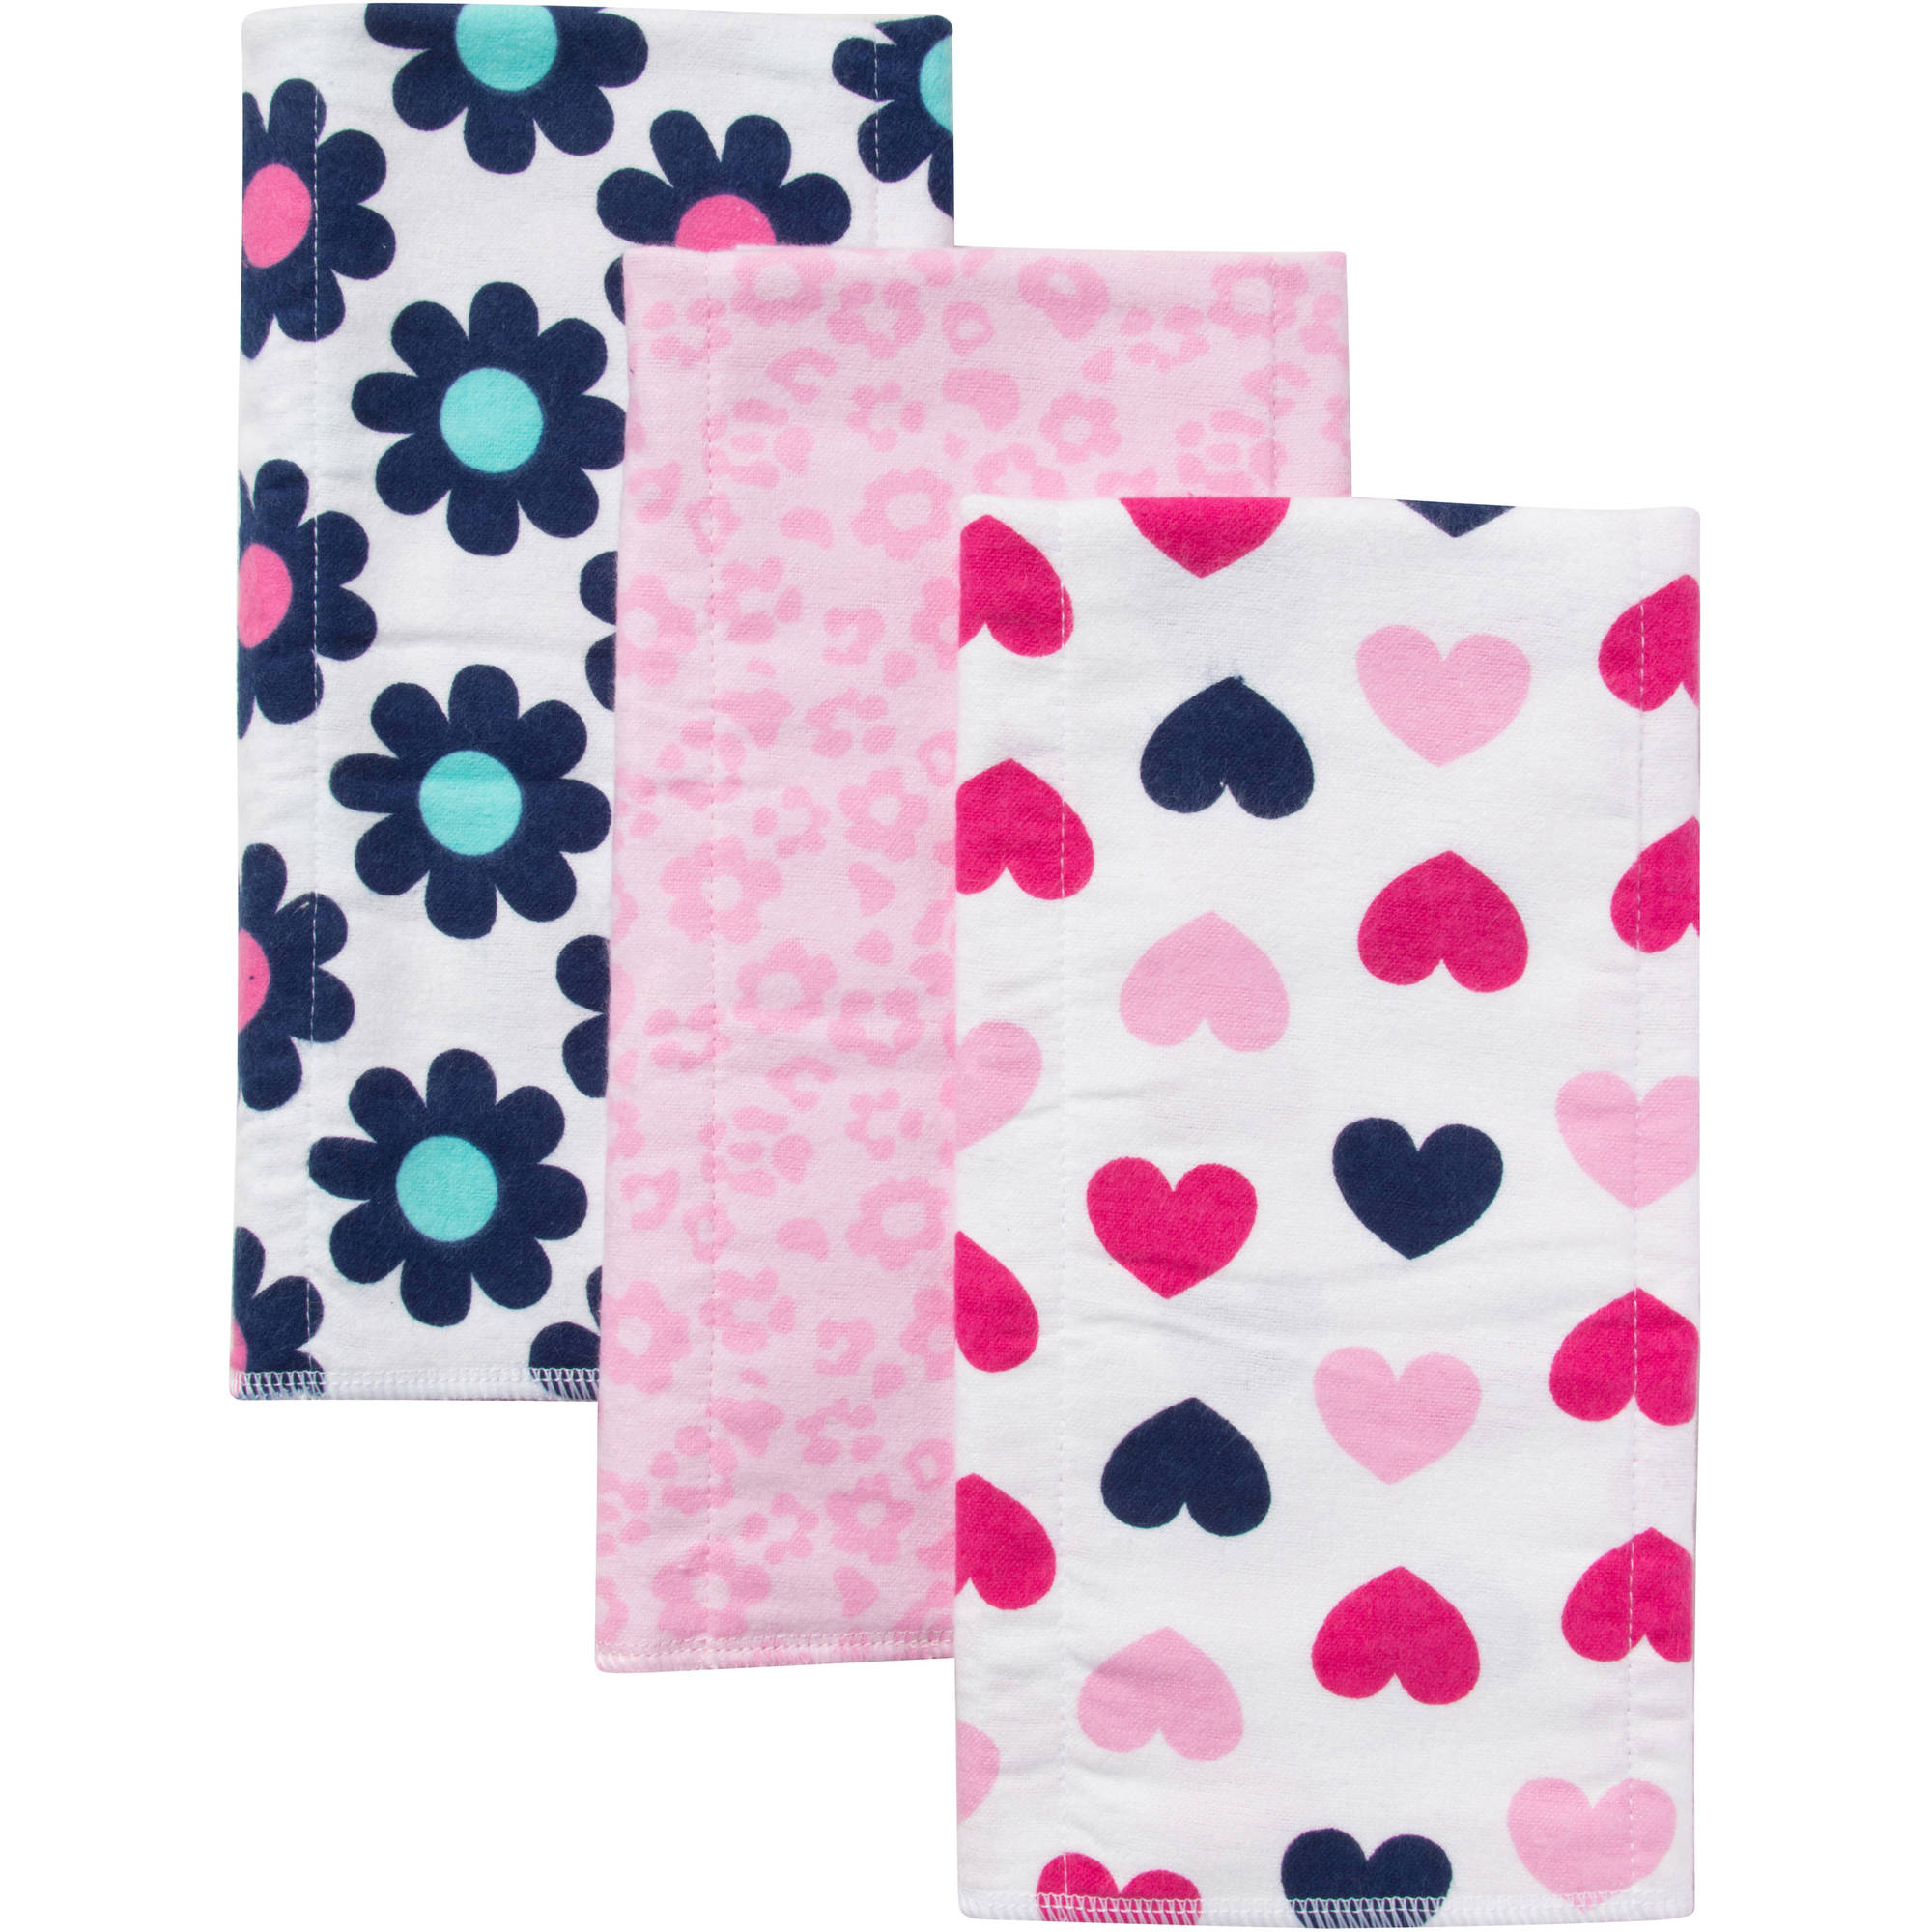 Gerber Newborn Baby Boy Flannel Burp Cloths, 3-pack